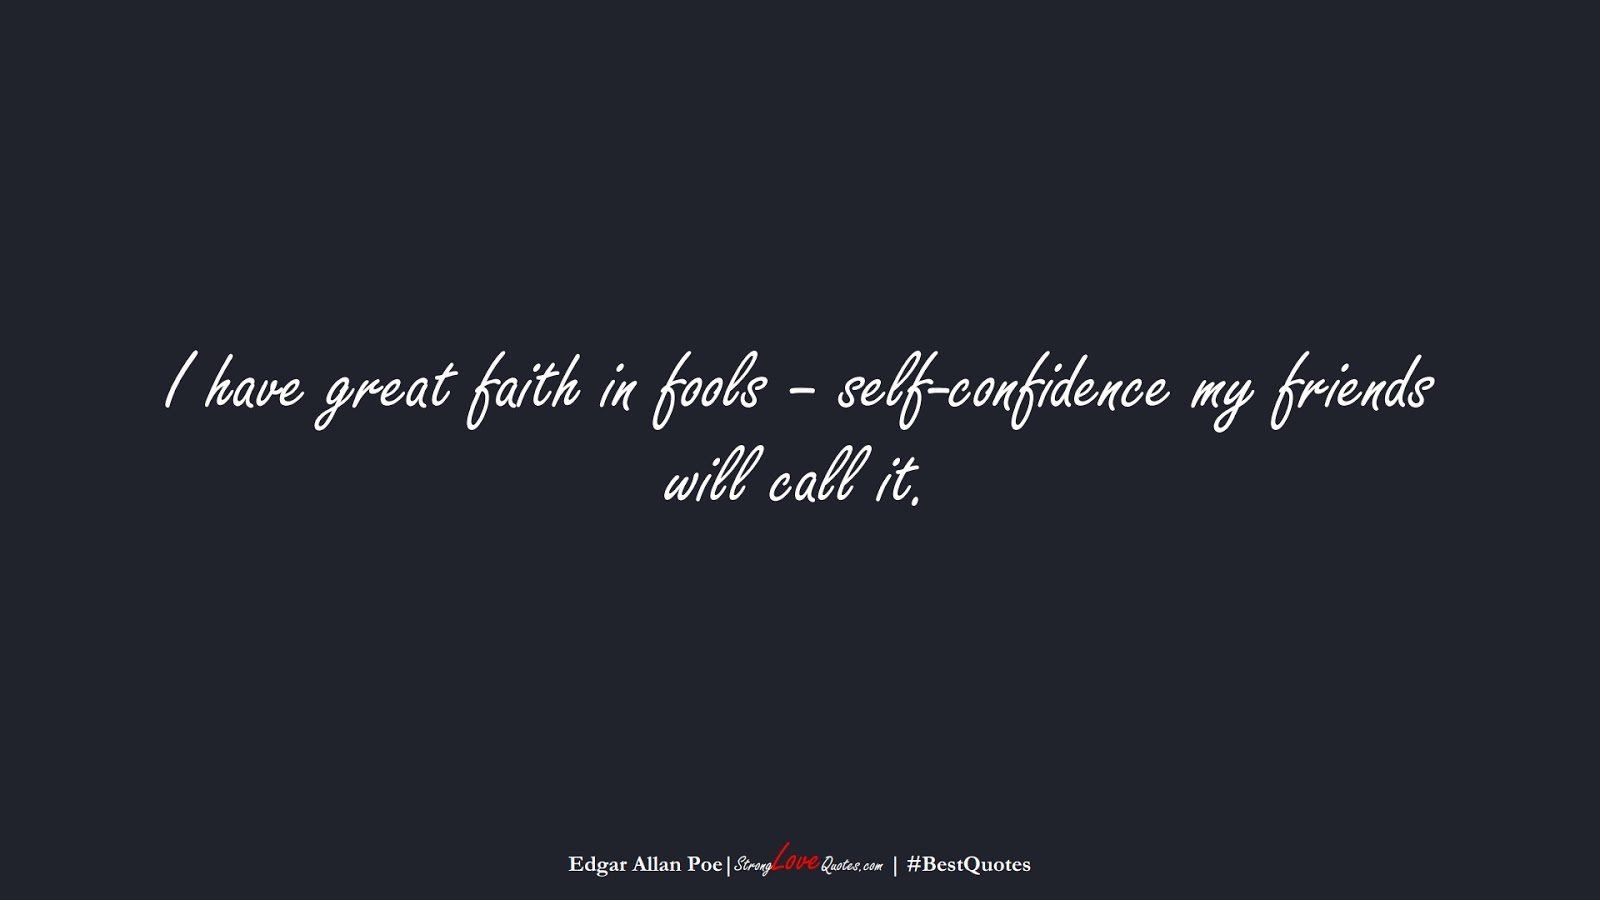 I have great faith in fools – self-confidence my friends will call it. (Edgar Allan Poe);  #BestQuotes